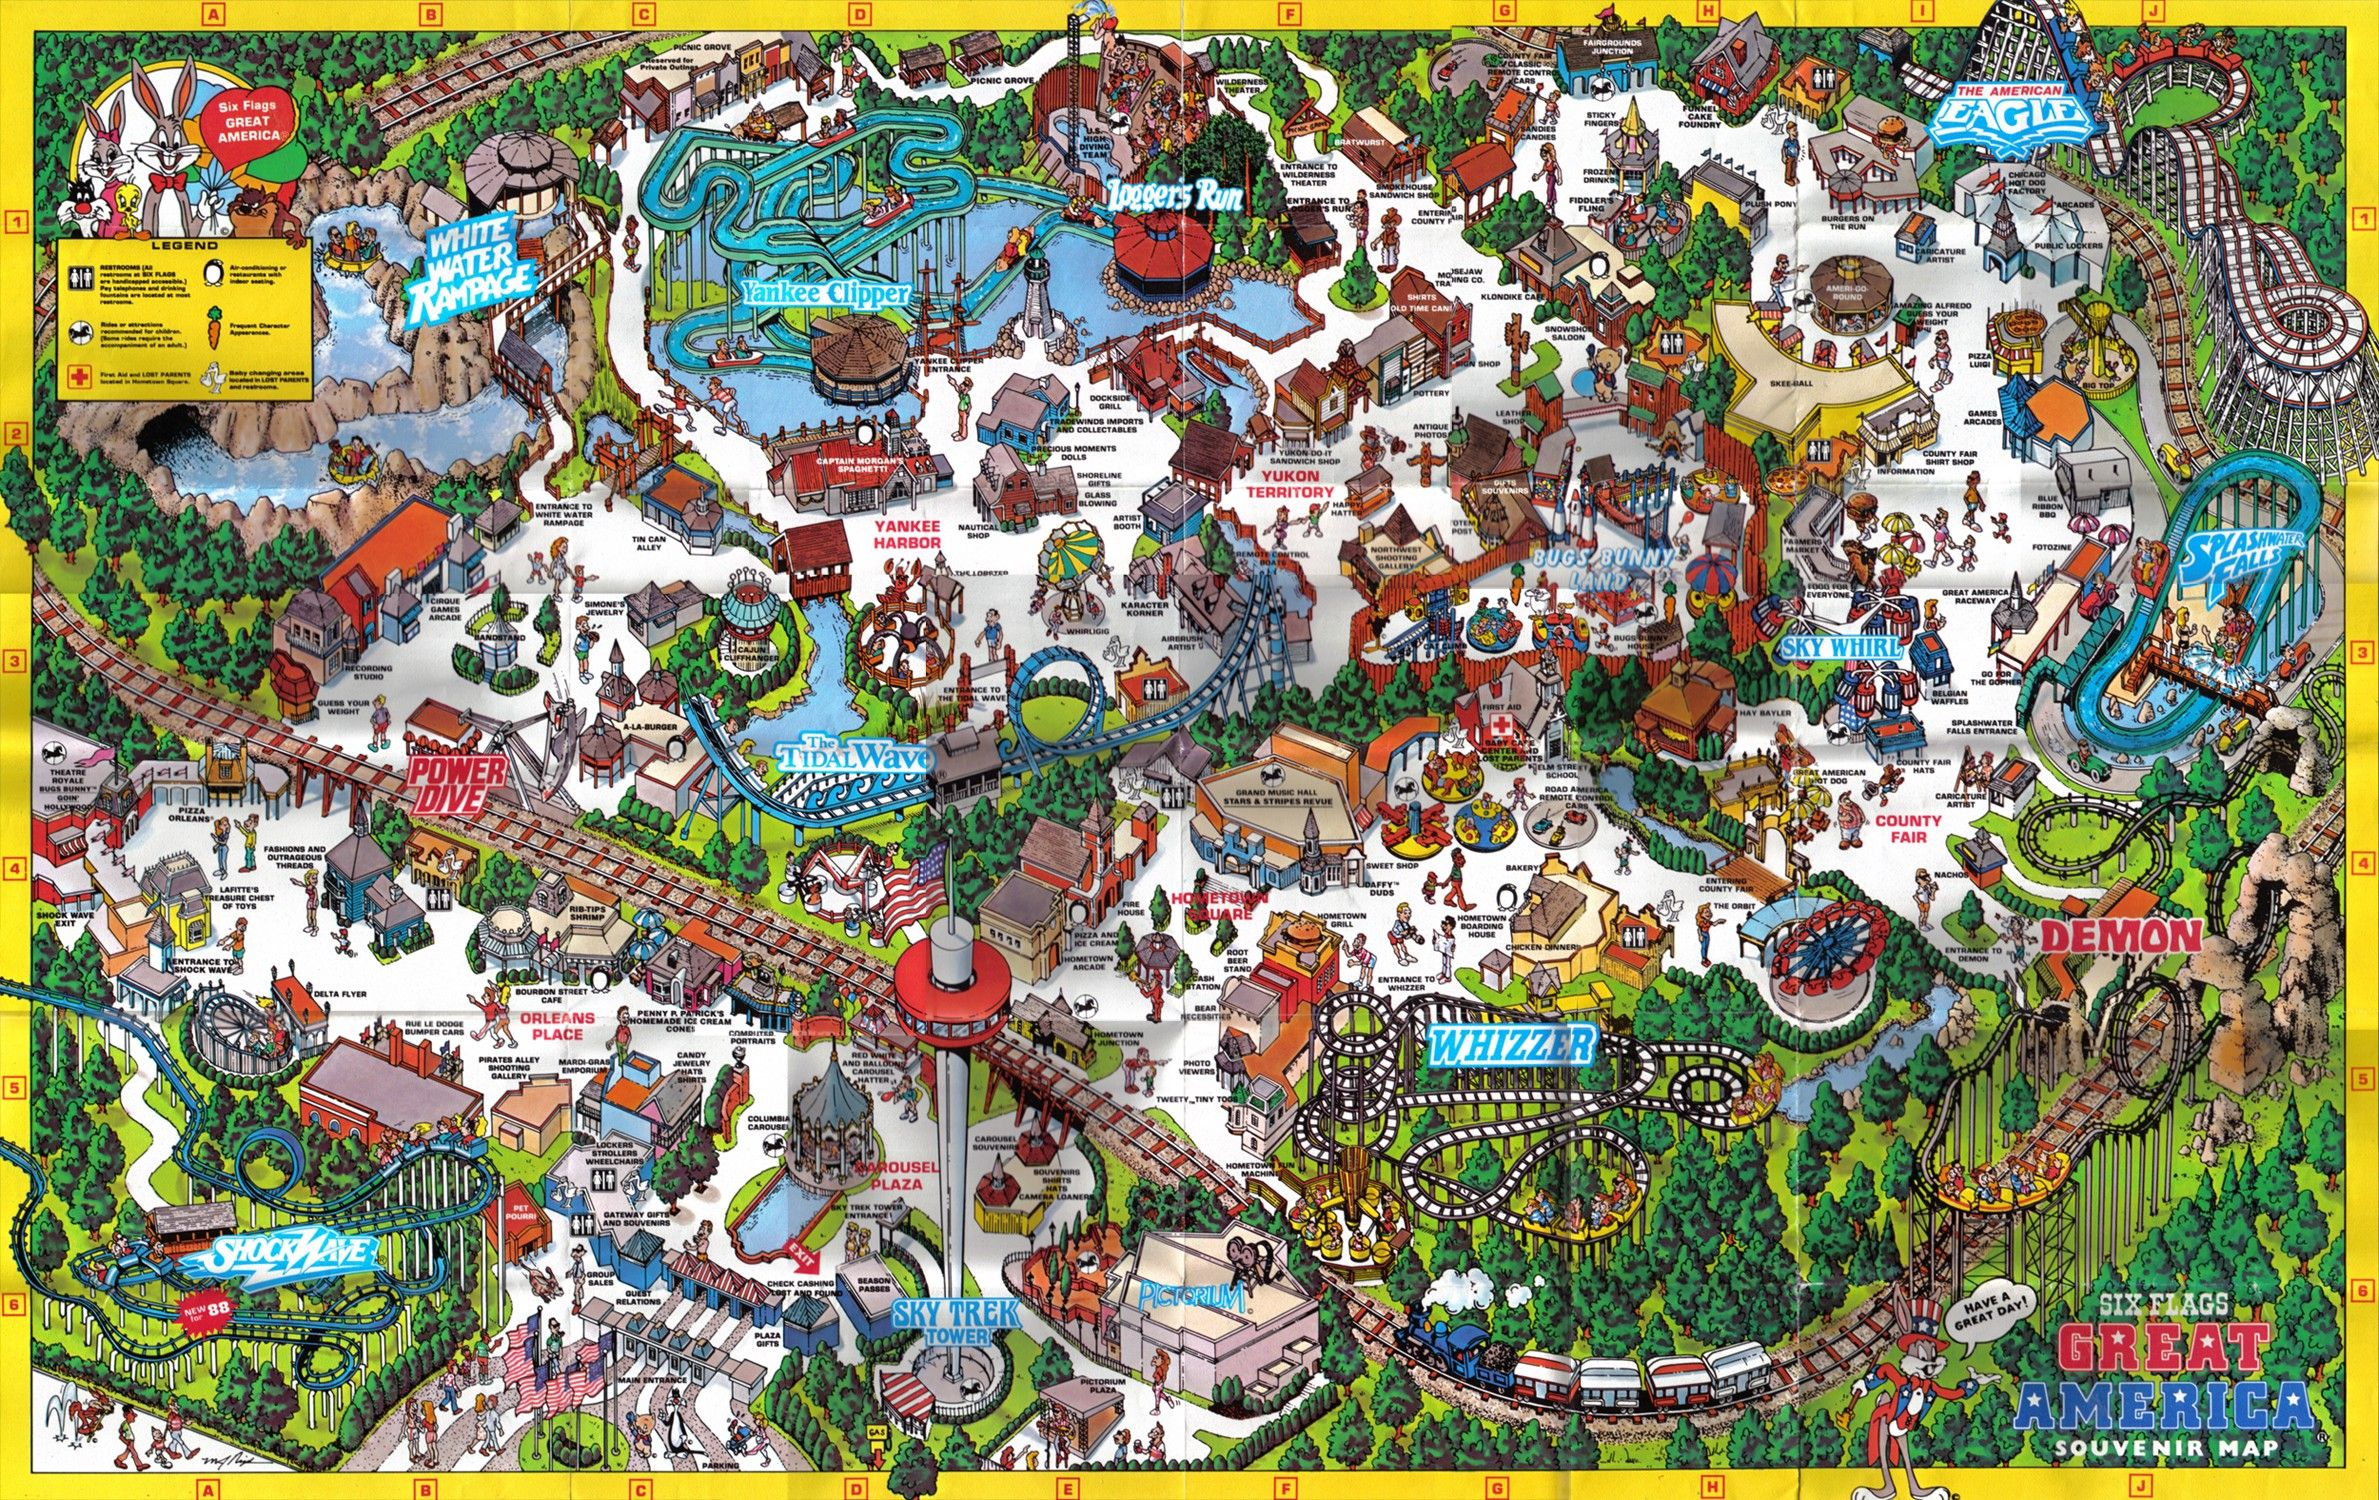 Pin by Toonamp * on Animals | Six flags, City photo, Park Six Flags Great America Map on 1980 astroworld map, glacial drumlin state trail map, six flags baltimore map, 6 flags map, rush street map, lithia springs ga on the map, scout camp rainey mountain georgia map, whitewater six flags map, kingda ka map, wyandot lake map, magic springs and crystal falls map, sesame place map, great america gurnee map, dallas six flags map, six flags great escape map, kiddieland map, chicago map, six flags gurnee map, nagashima spa land map, china great wall of china map,